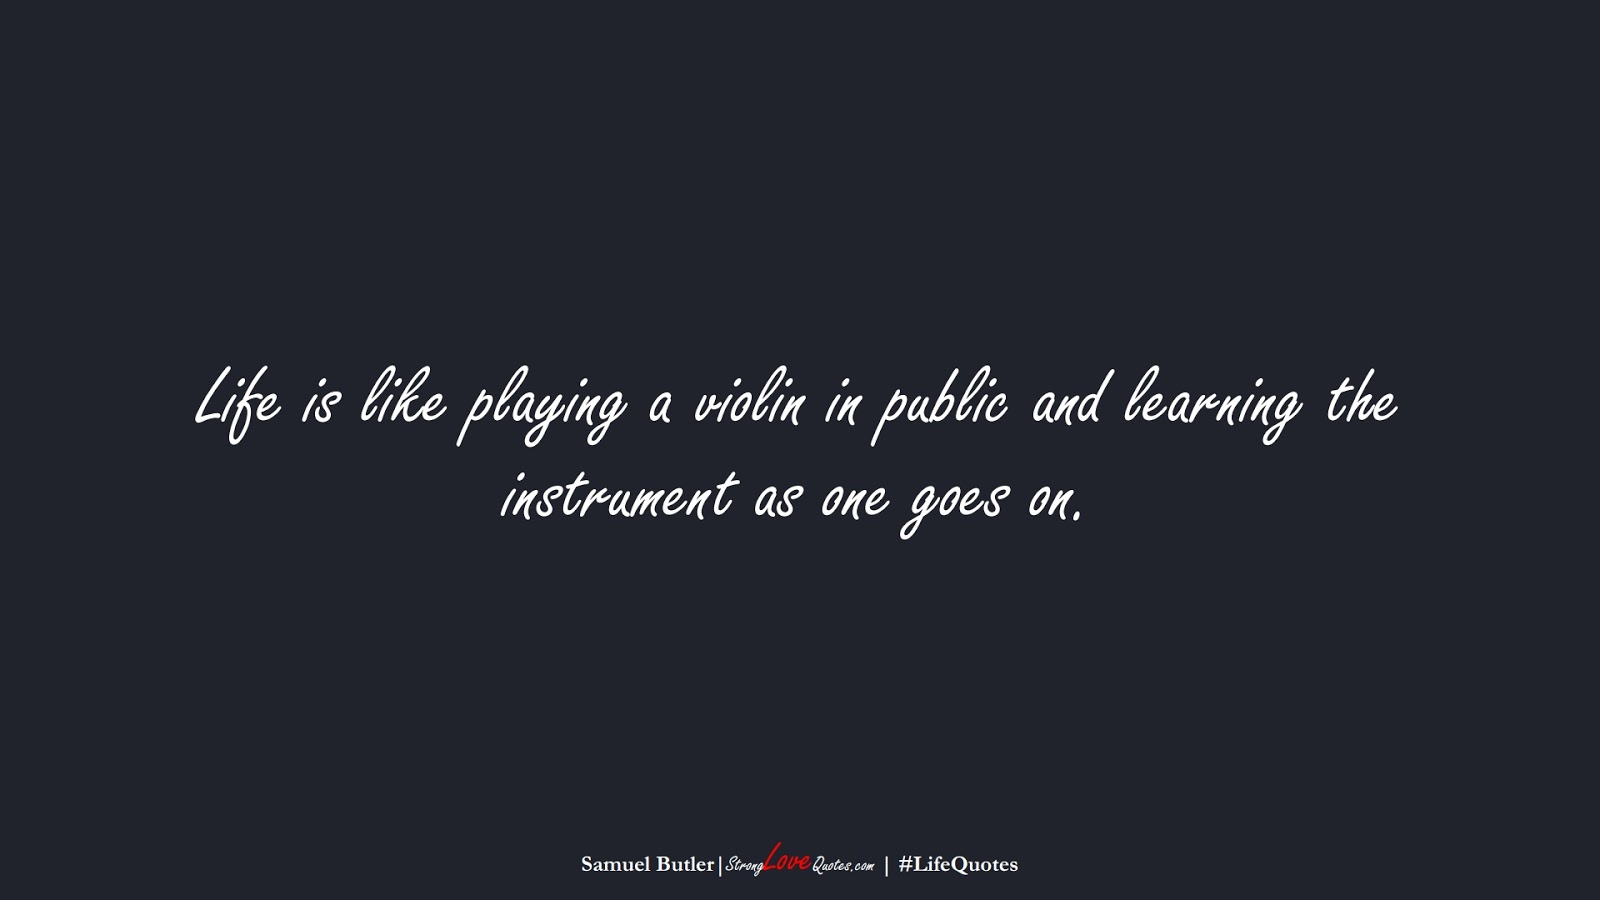 Life is like playing a violin in public and learning the instrument as one goes on. (Samuel Butler);  #LifeQuotes